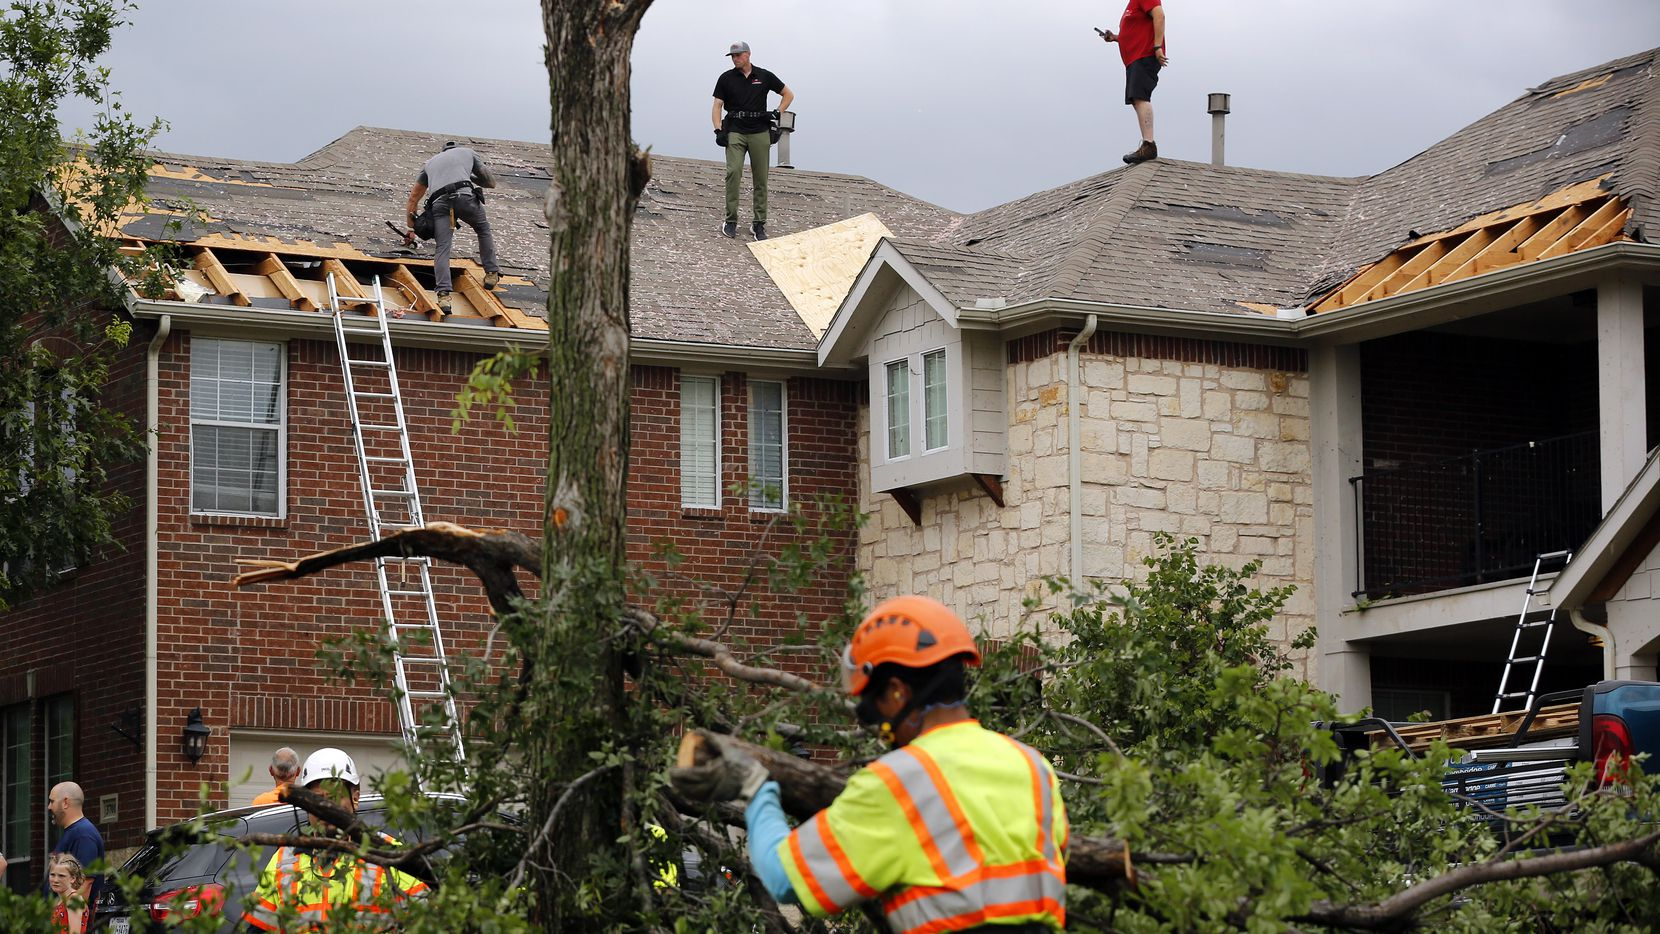 Oliver Drive in North Fort Worth was a hub of activity as crews covered damaged rooftops and disposed of splintered trees Wednesday.